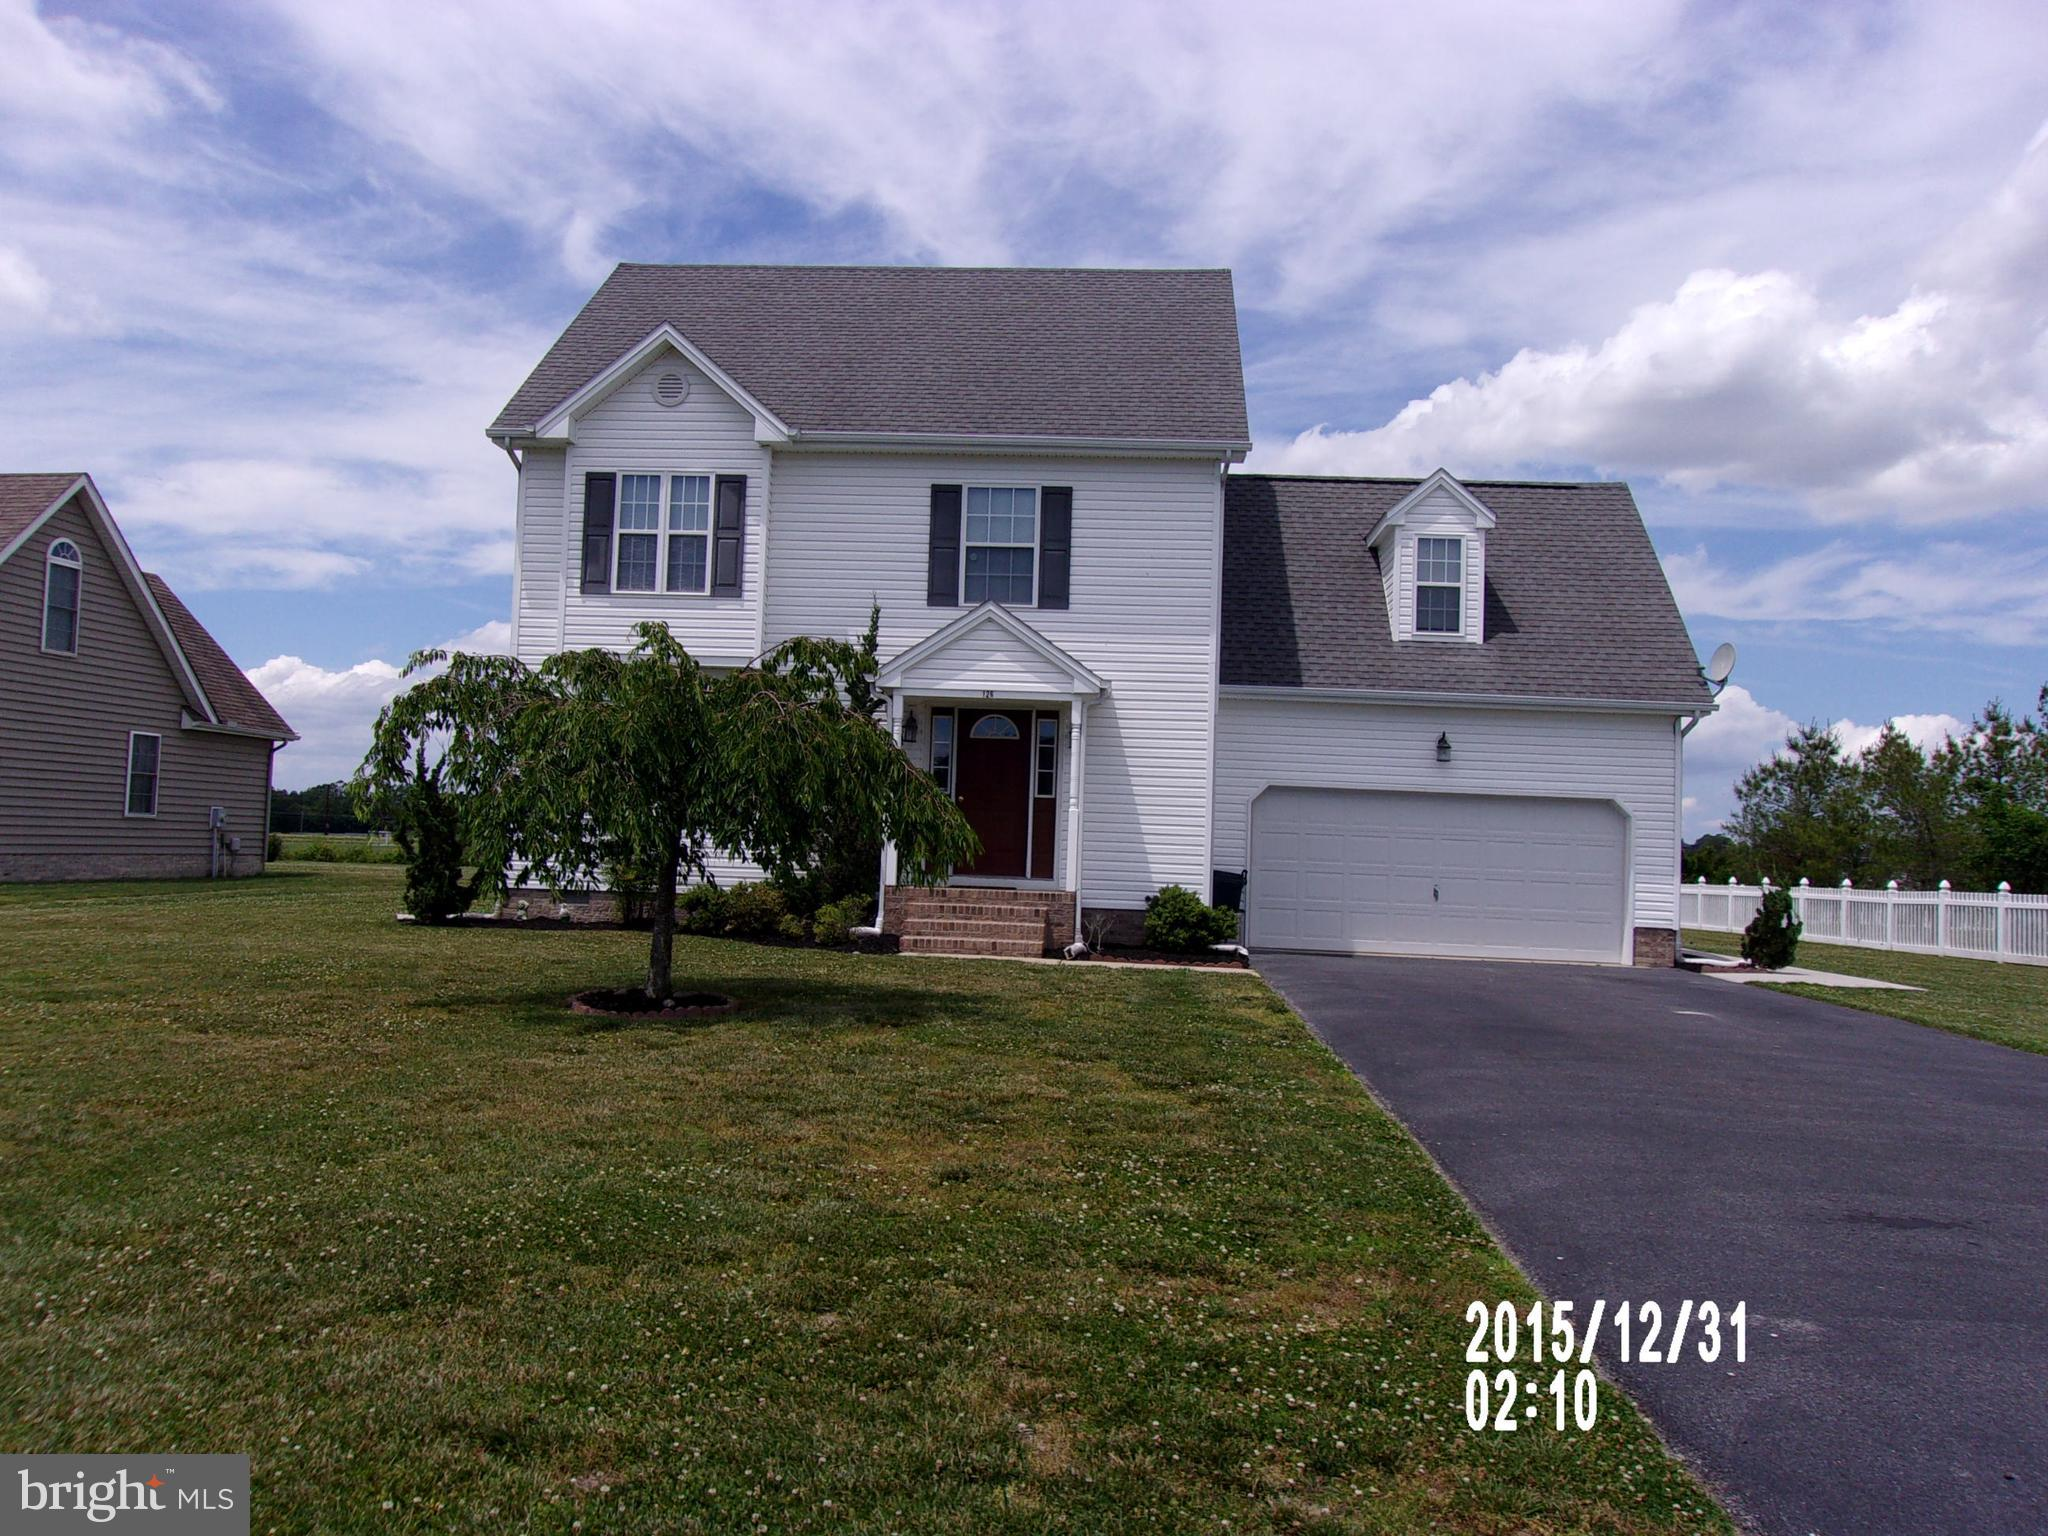 126 NINA Ln, Fruitland, MD, 21826